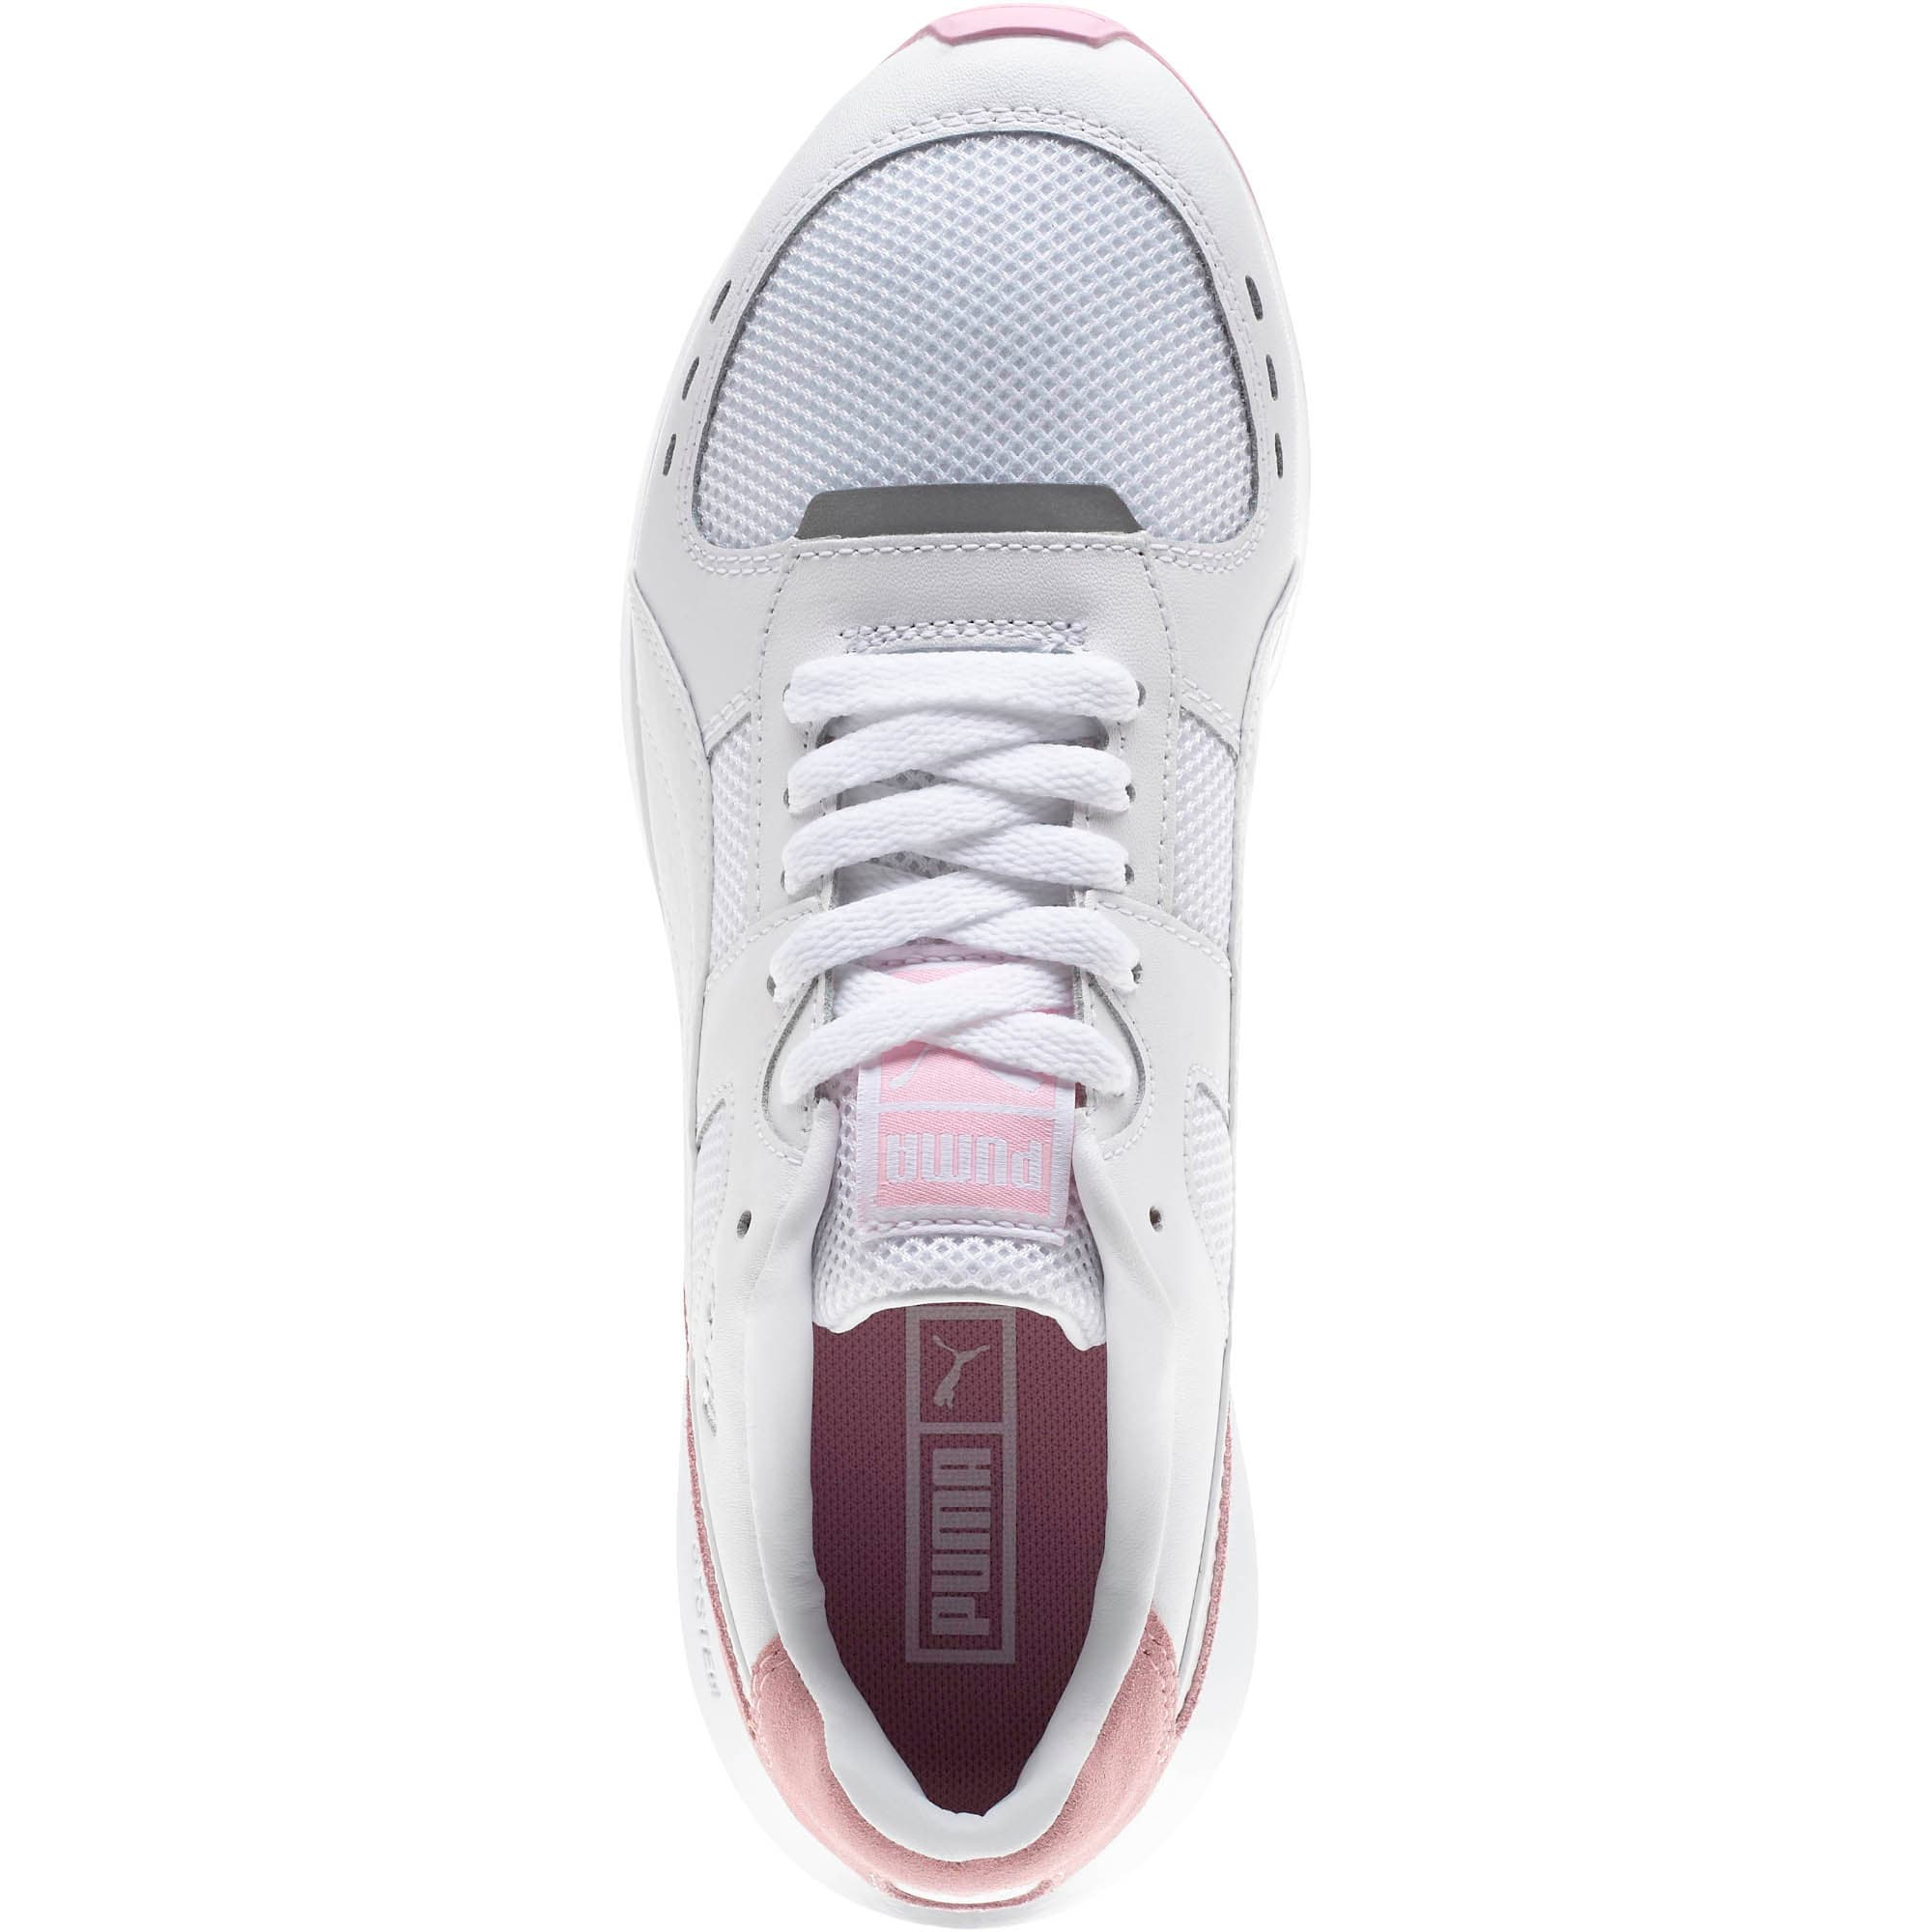 Thumbnail 5 of RS-150 Contrast Women's Sneakers, Puma White-Pale Pink, medium